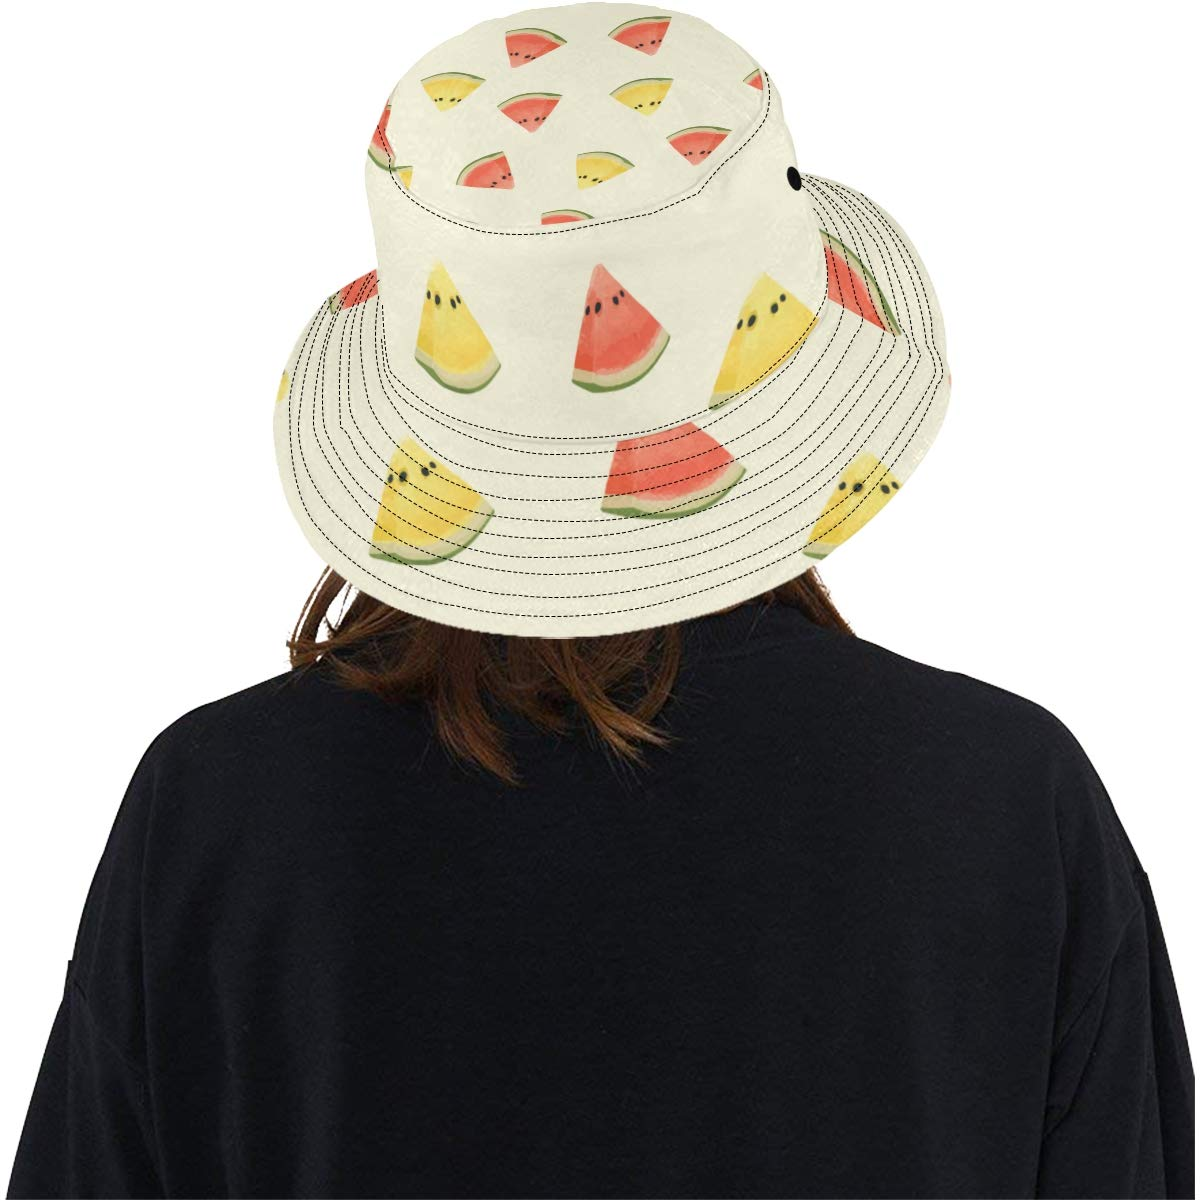 Women and Men with Customize Top Packable Fisherman Cap for Outdoor Travel Watercolor Yellow Watermelon New Summer Unisex Cotton Fashion Fishing Sun Bucket Hats for Kid Teens